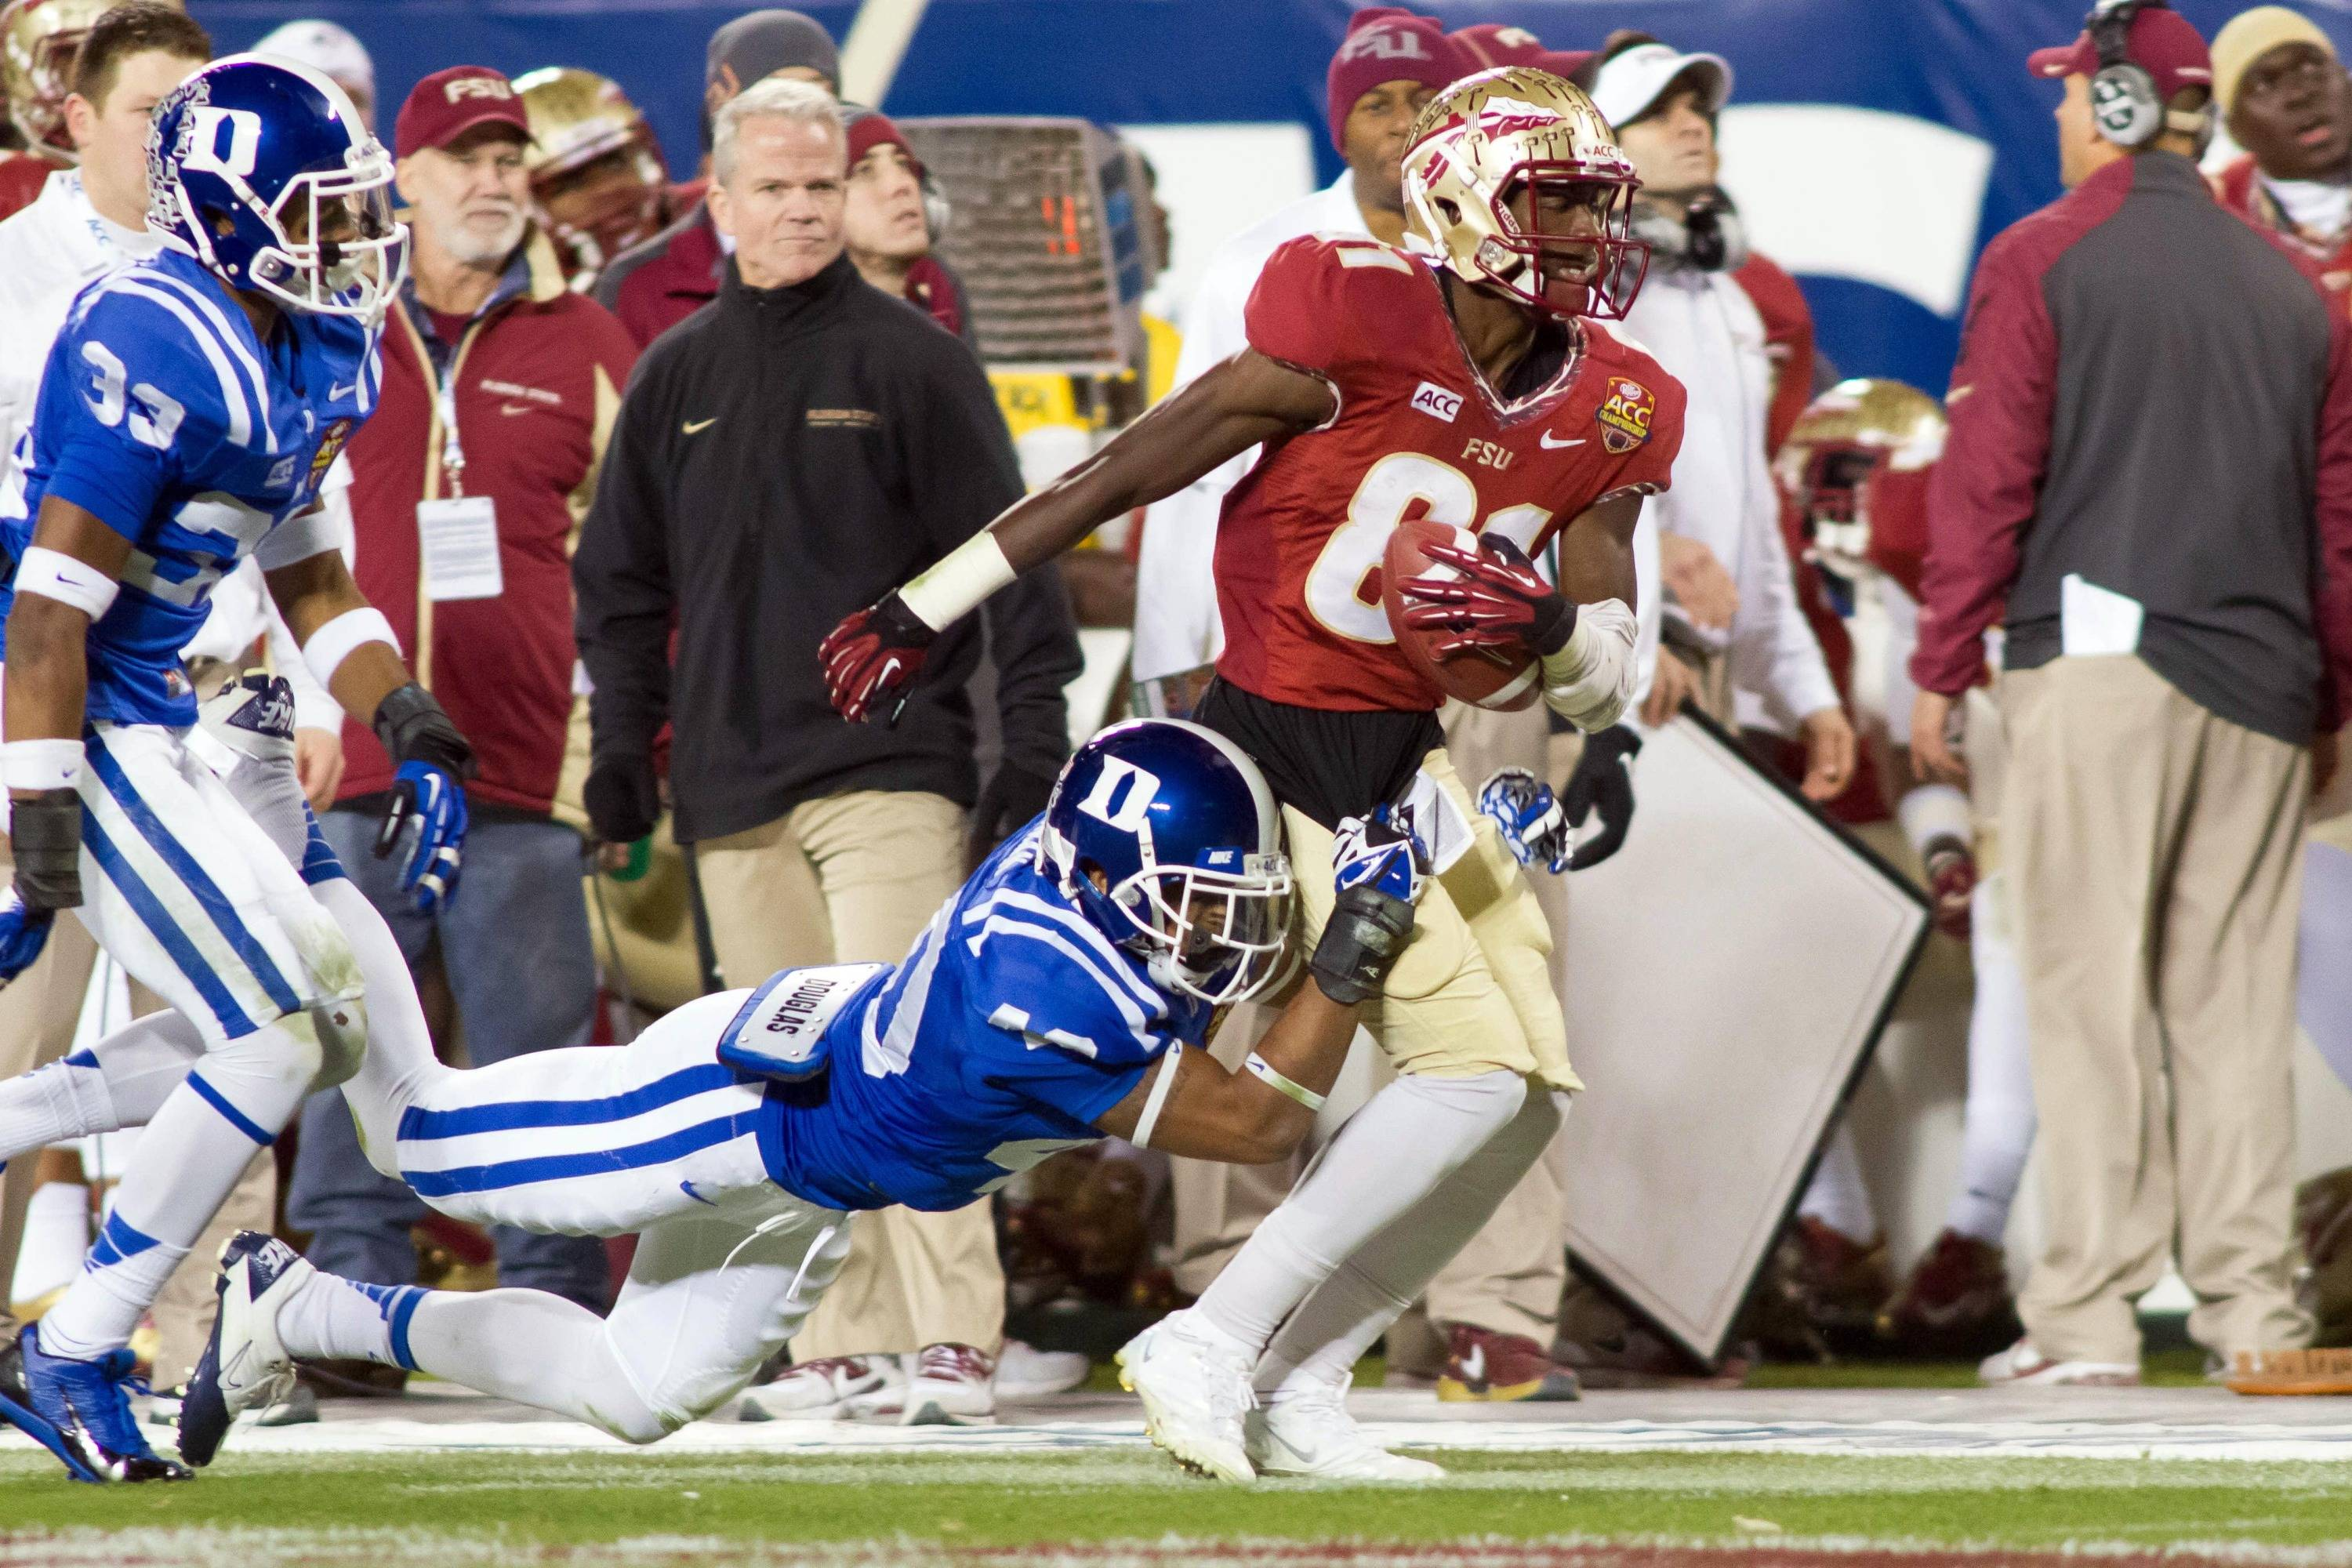 Dec 7, 2013; Charlotte, NC, USA; Florida State Seminoles wide receiver Kenny Shaw (81) runs after making a catch during the third quarter against the Duke Blue Devils at Bank of America Stadium. FSU defeated Duke 45-7. Mandatory Credit: Jeremy Brevard-USA TODAY Sports